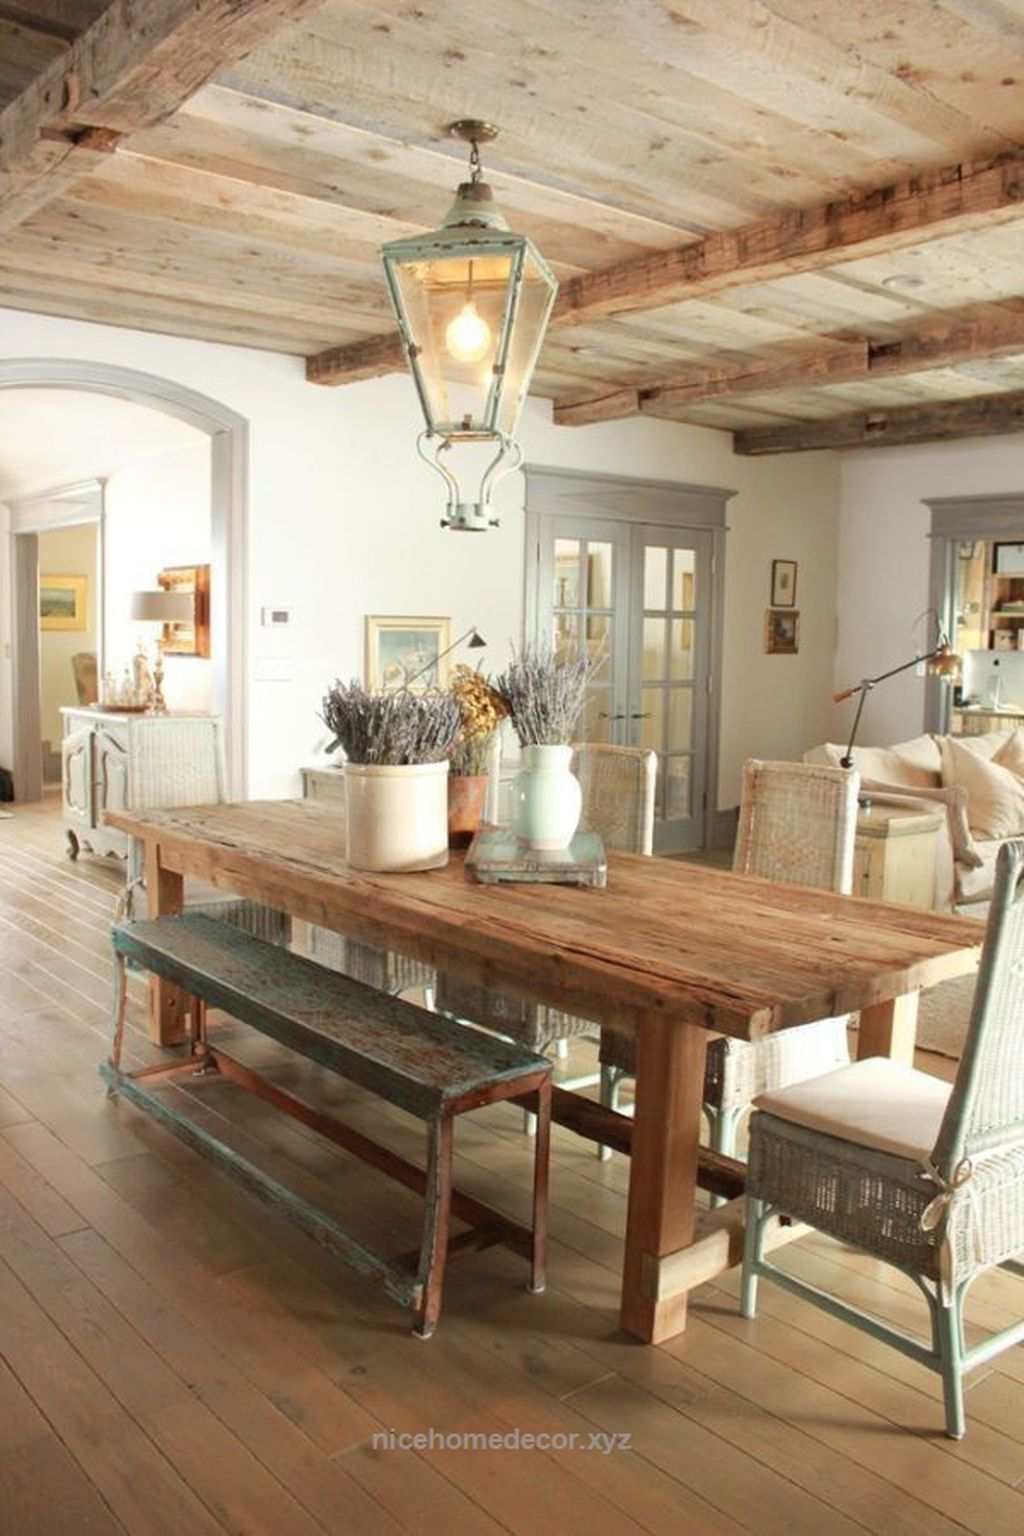 40 inspiring rustic country kitchen ideas to renew your ordinary rh pinterest com